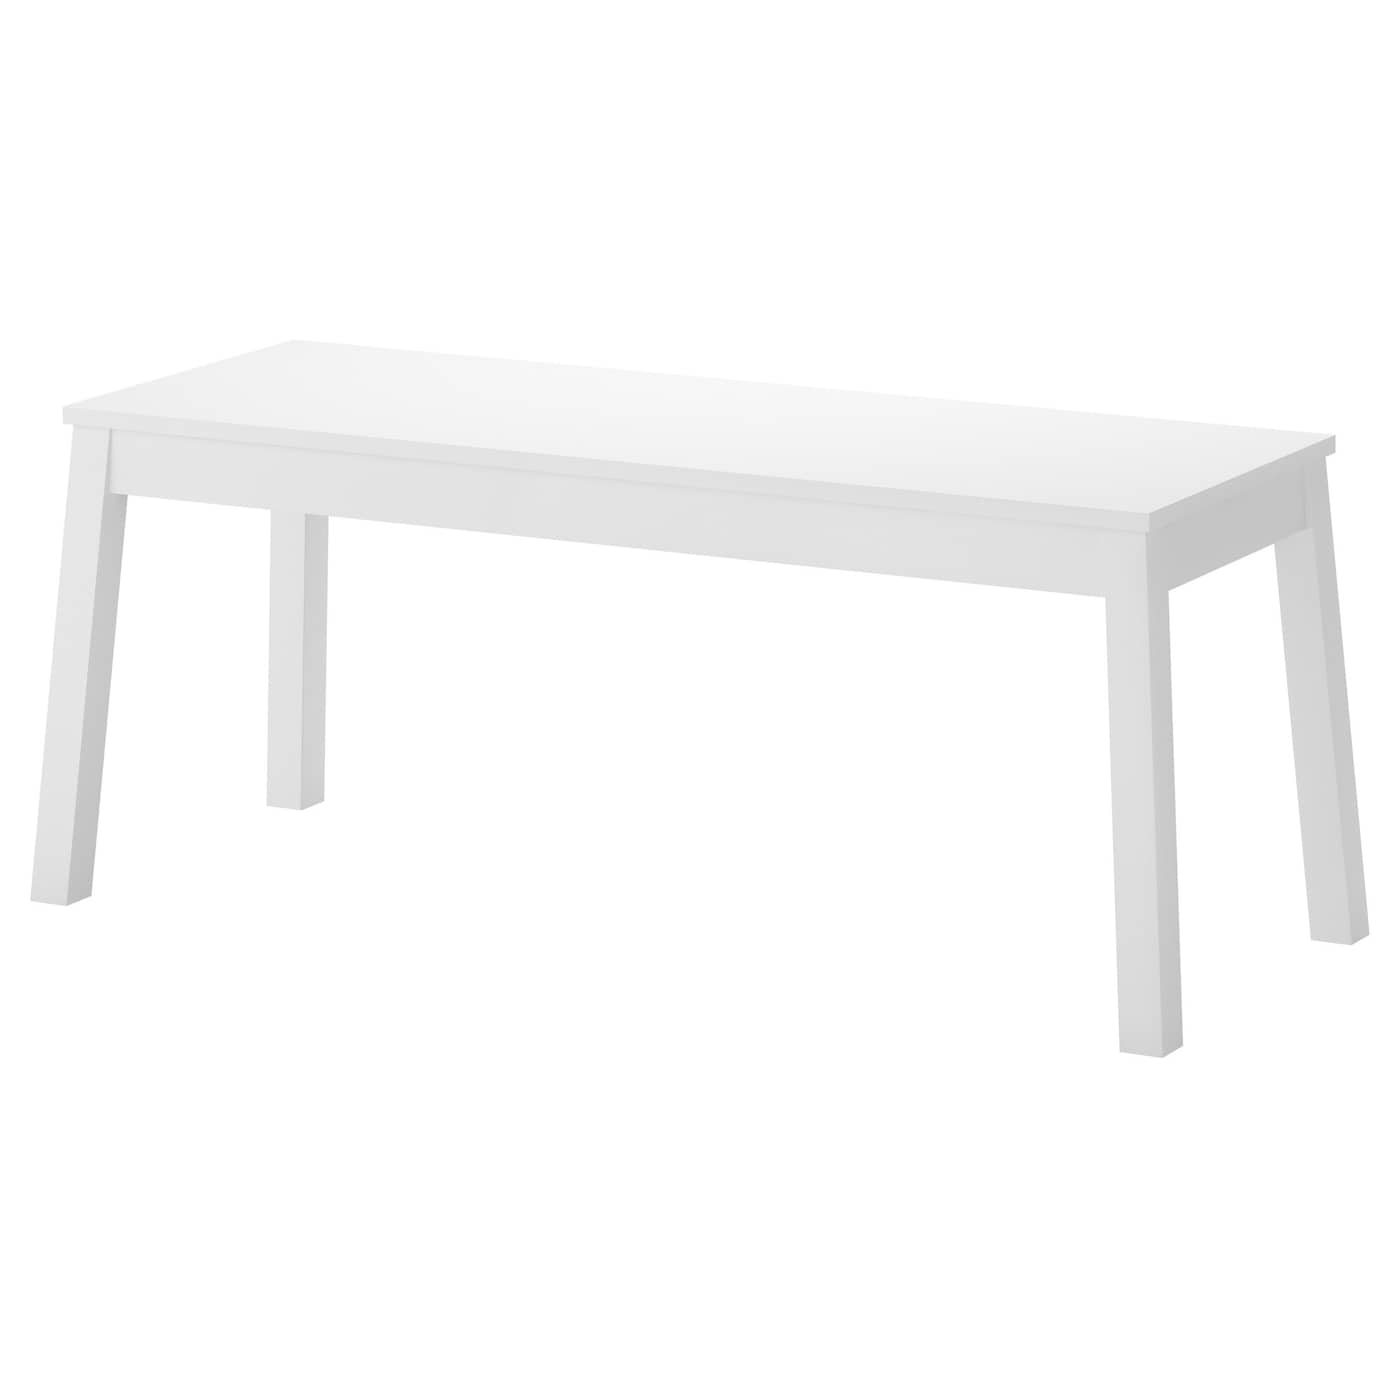 sigurd bench white 110 cm ikea. Black Bedroom Furniture Sets. Home Design Ideas